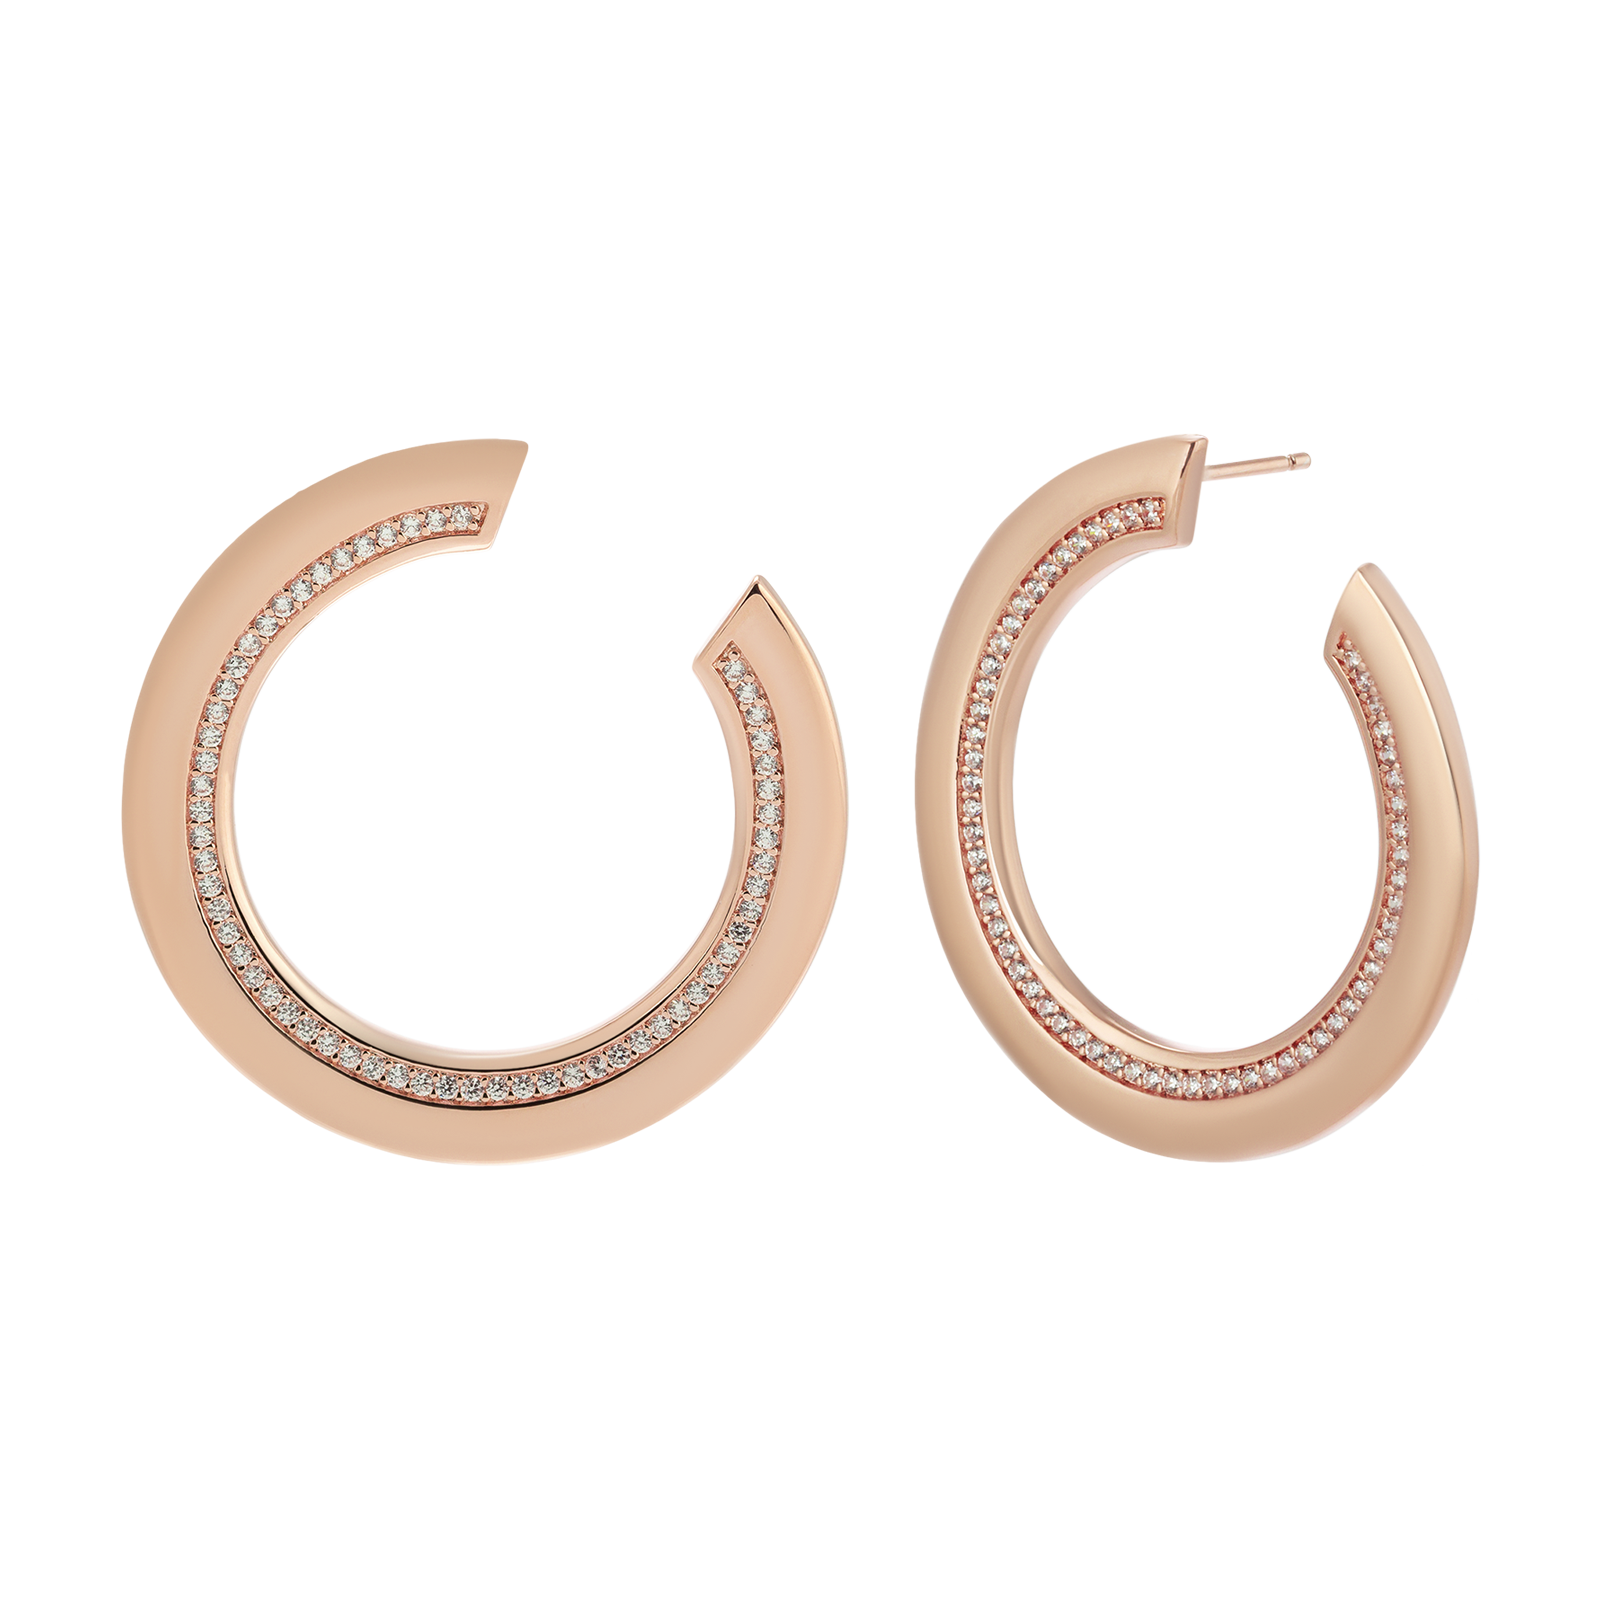 Rose gold earrings product photography